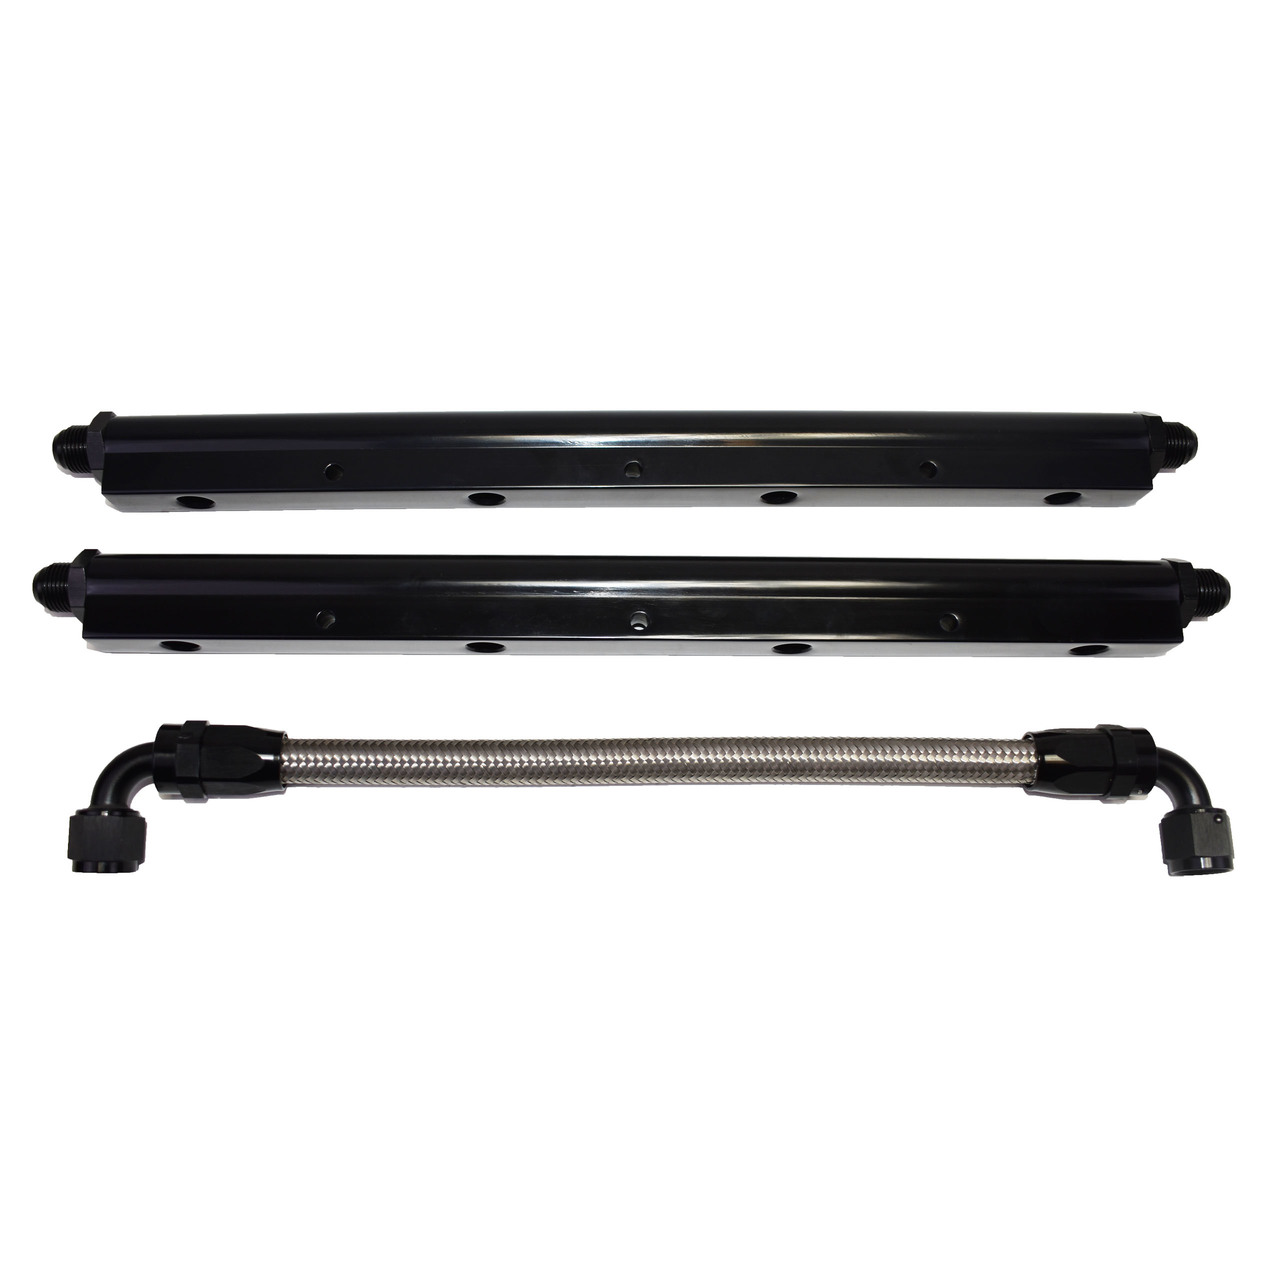 A-Team Performance 81008BK Black Fuel Rail with Middle Pipe